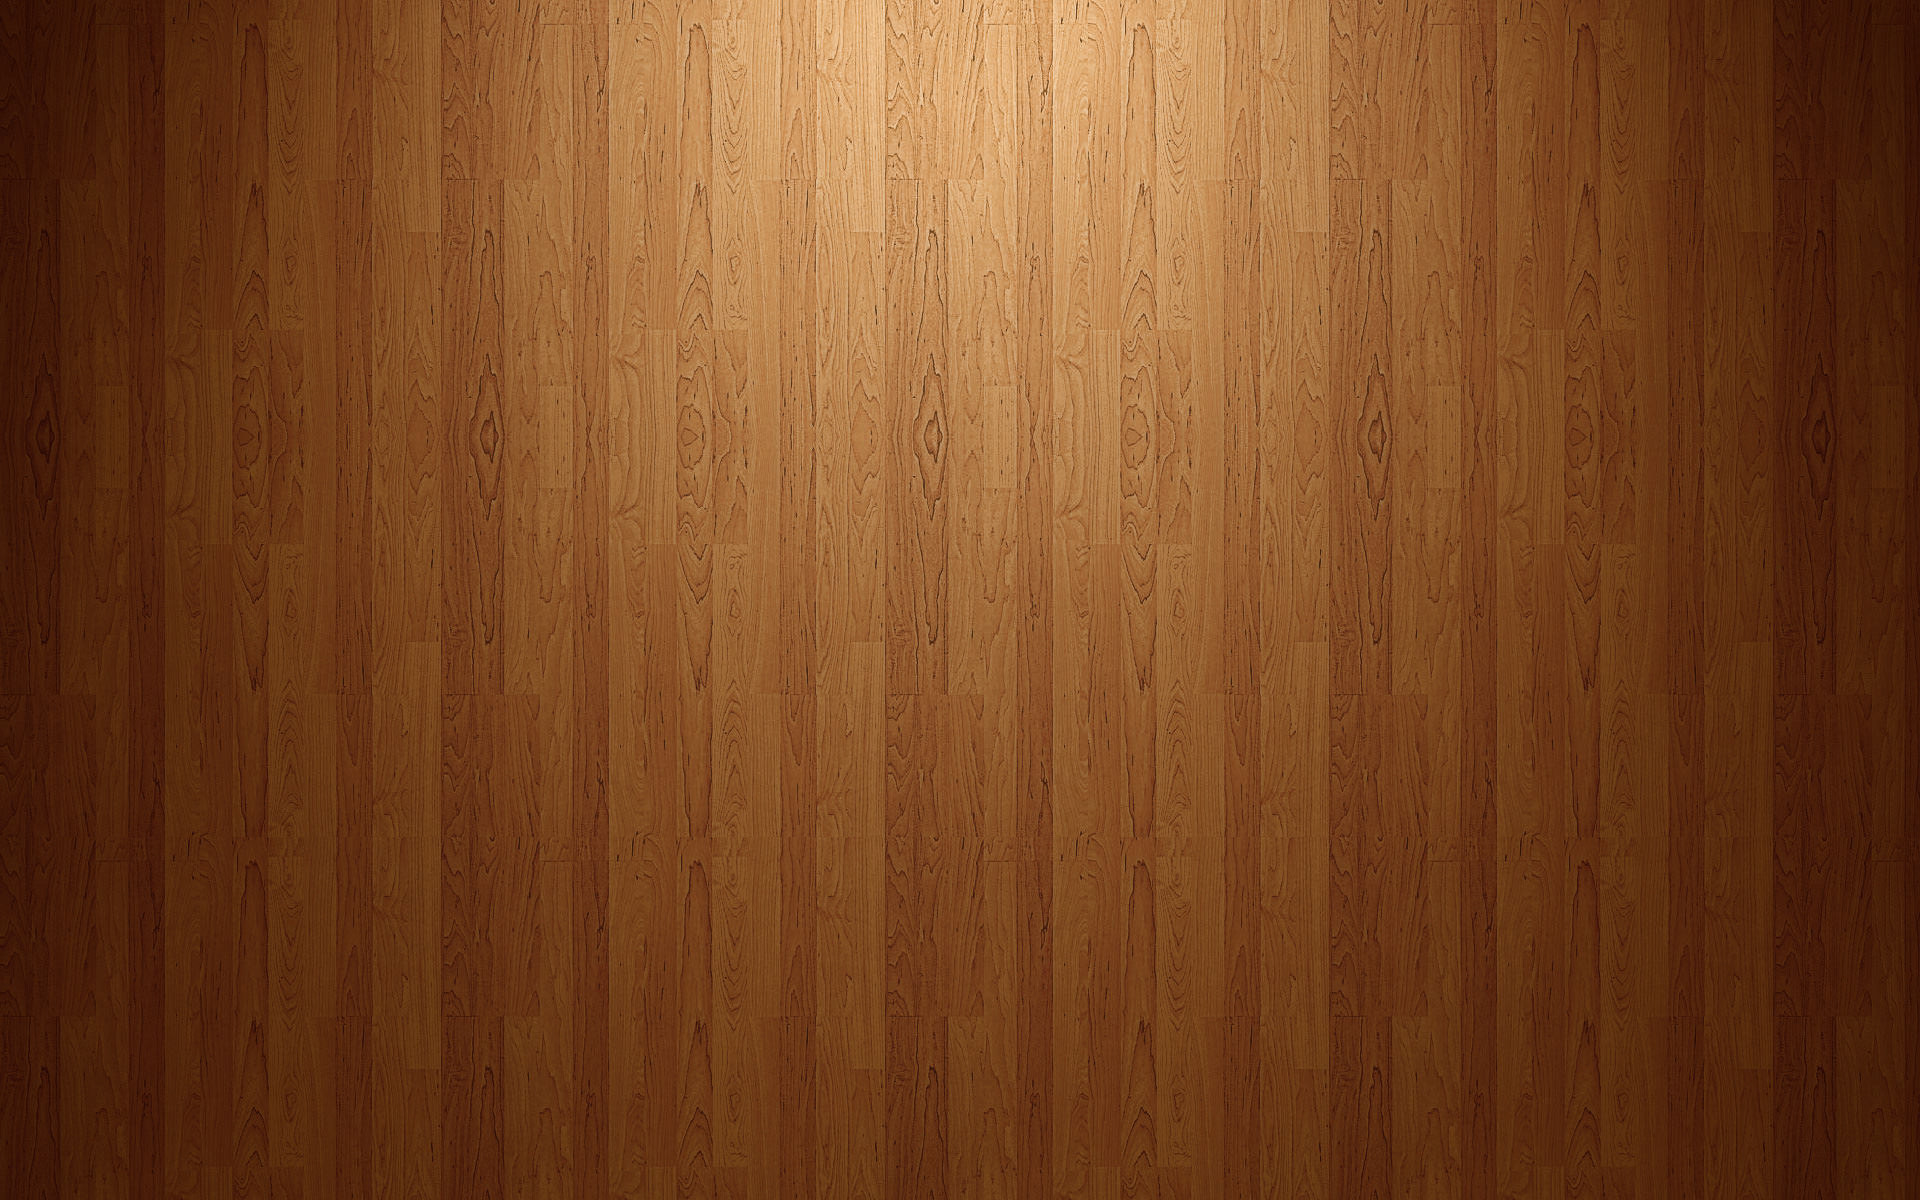 30 hd wood backgrounds wallpapers freecreatives for Hardwood floor panels